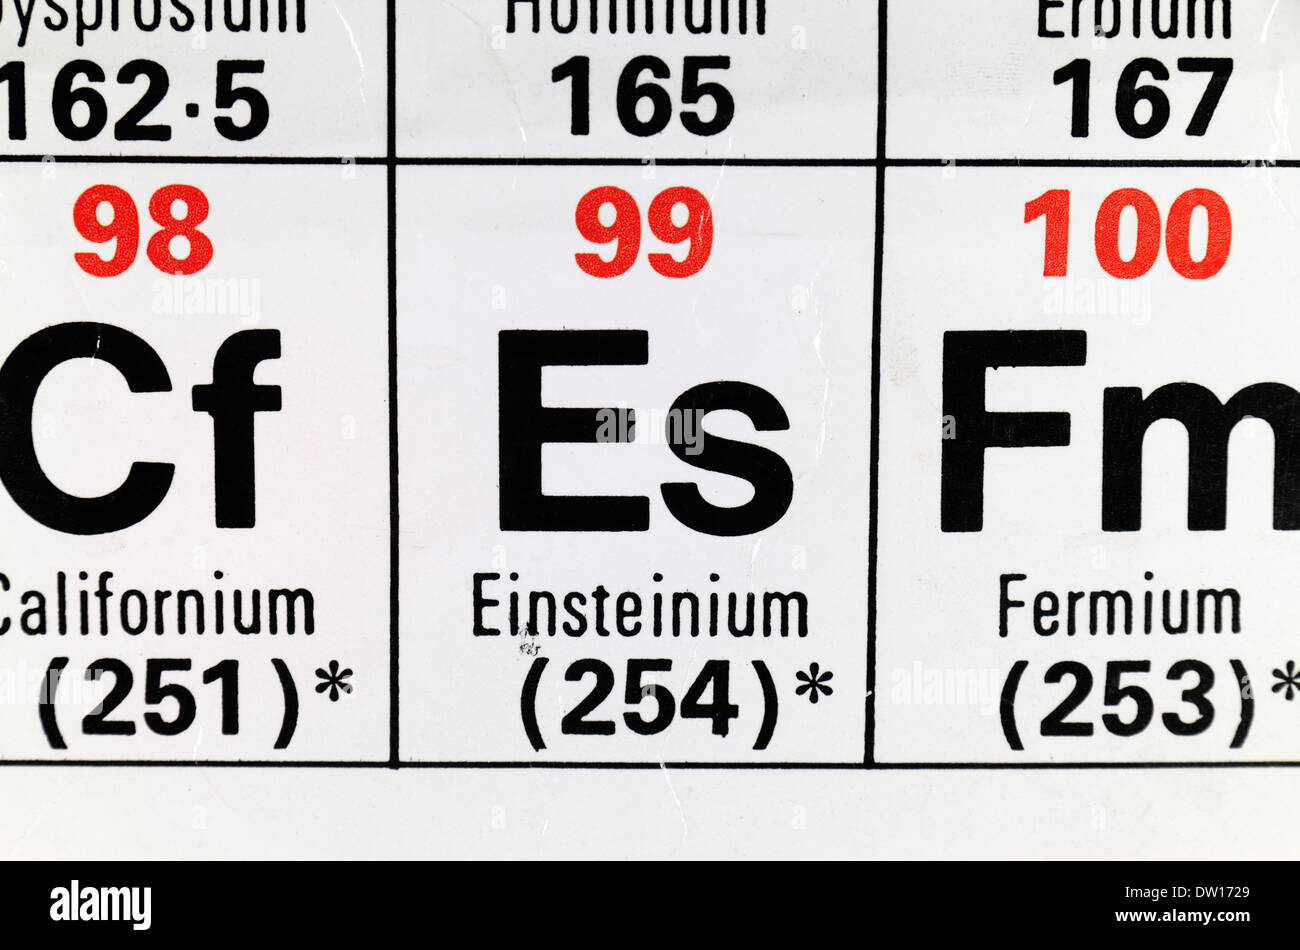 Einsteinium periodic table choice image periodic table images einsteinium es as it appears on the periodic table stock photo einsteinium es as it appears gamestrikefo Image collections